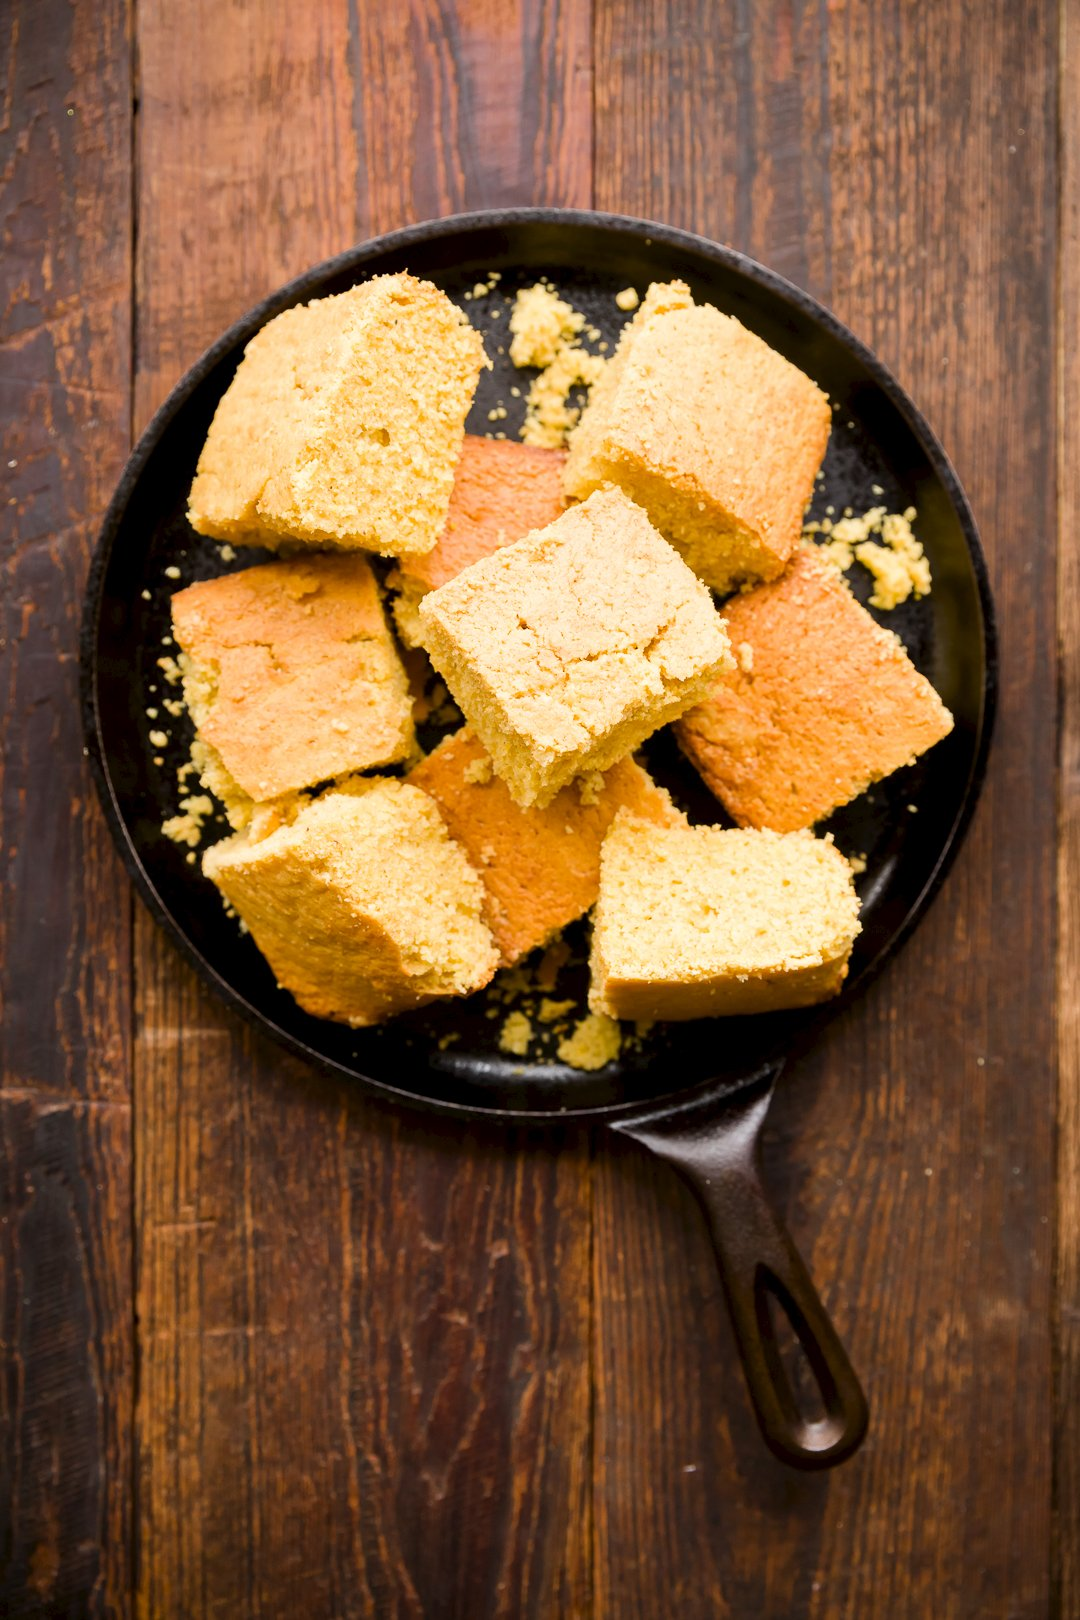 Cornbread pieces in a cast iron skillet